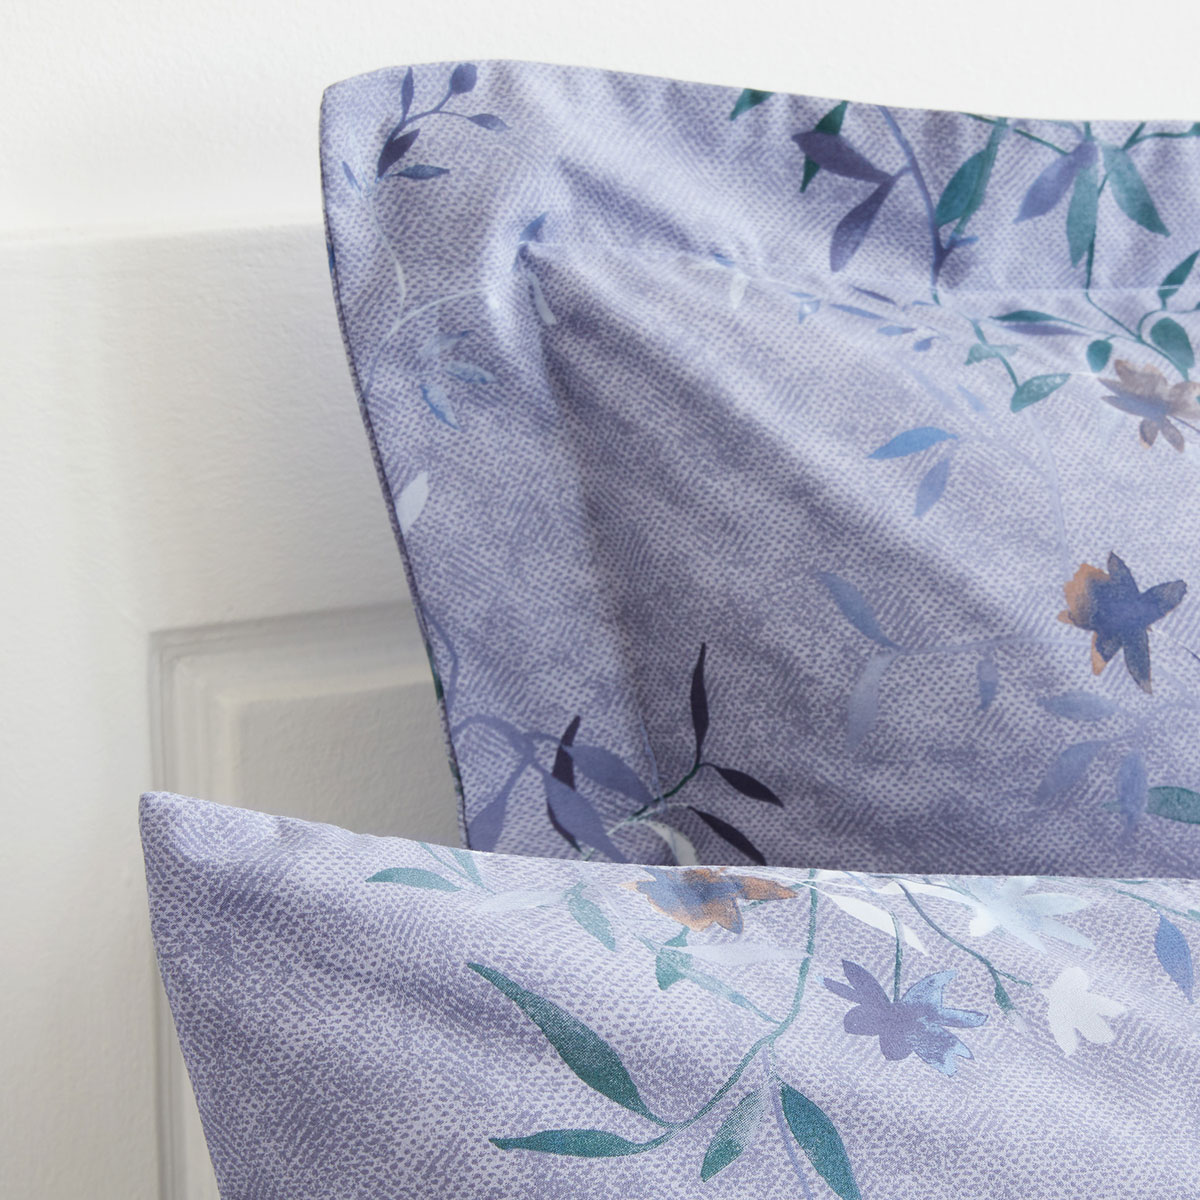 Lavender pillowcases with a floral print